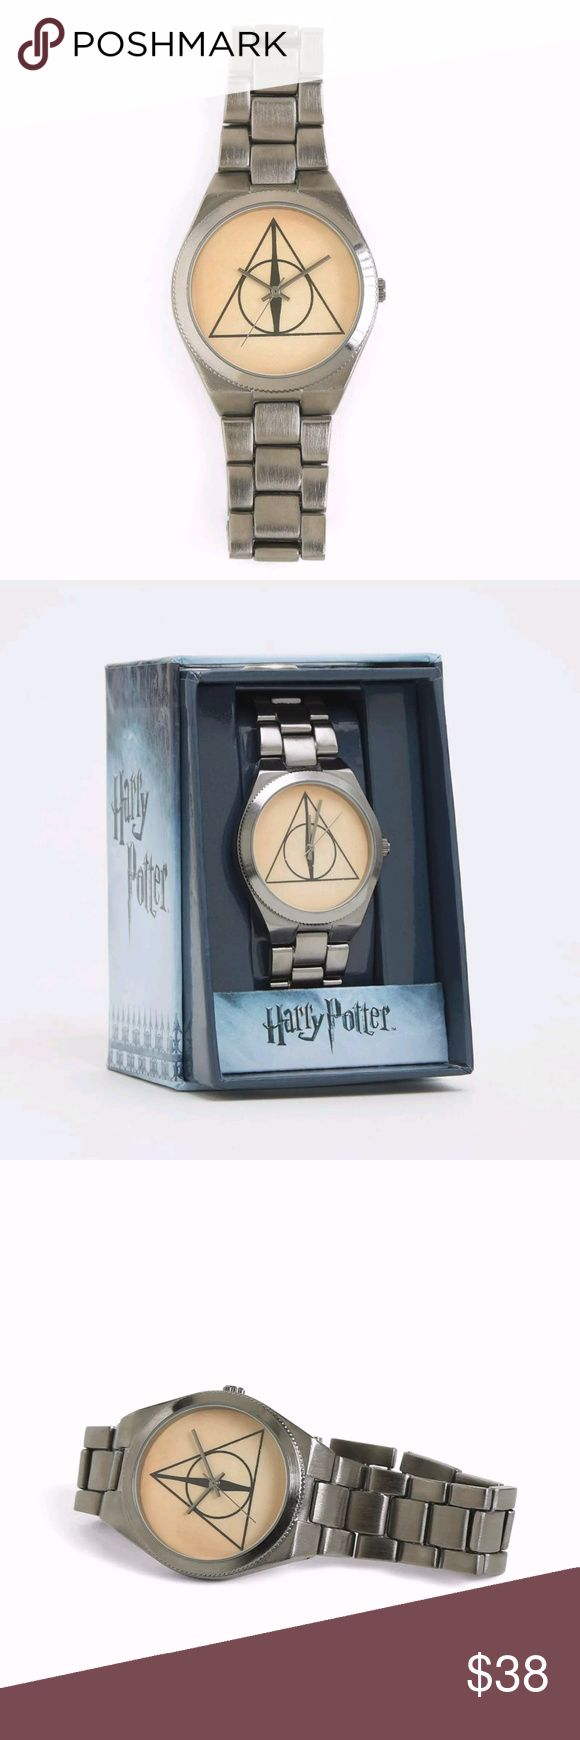 """Harry Potter Licensed Deathly Hallows Silver Watch Harry Potter Licensed Deathly Hallows Silver Metal Band Watch  Length: 8""""  You won't want an invisibility cloak with this watch; all eyes will be on you! The hematite link style keeps time without having to use a time-turner thanks to the Deathly Hallows insignia on the watch's face.Two links can be removed for a tighter fit.  Brand New in Package Will ship within 1 business day Harry Potter Accessories Watches"""